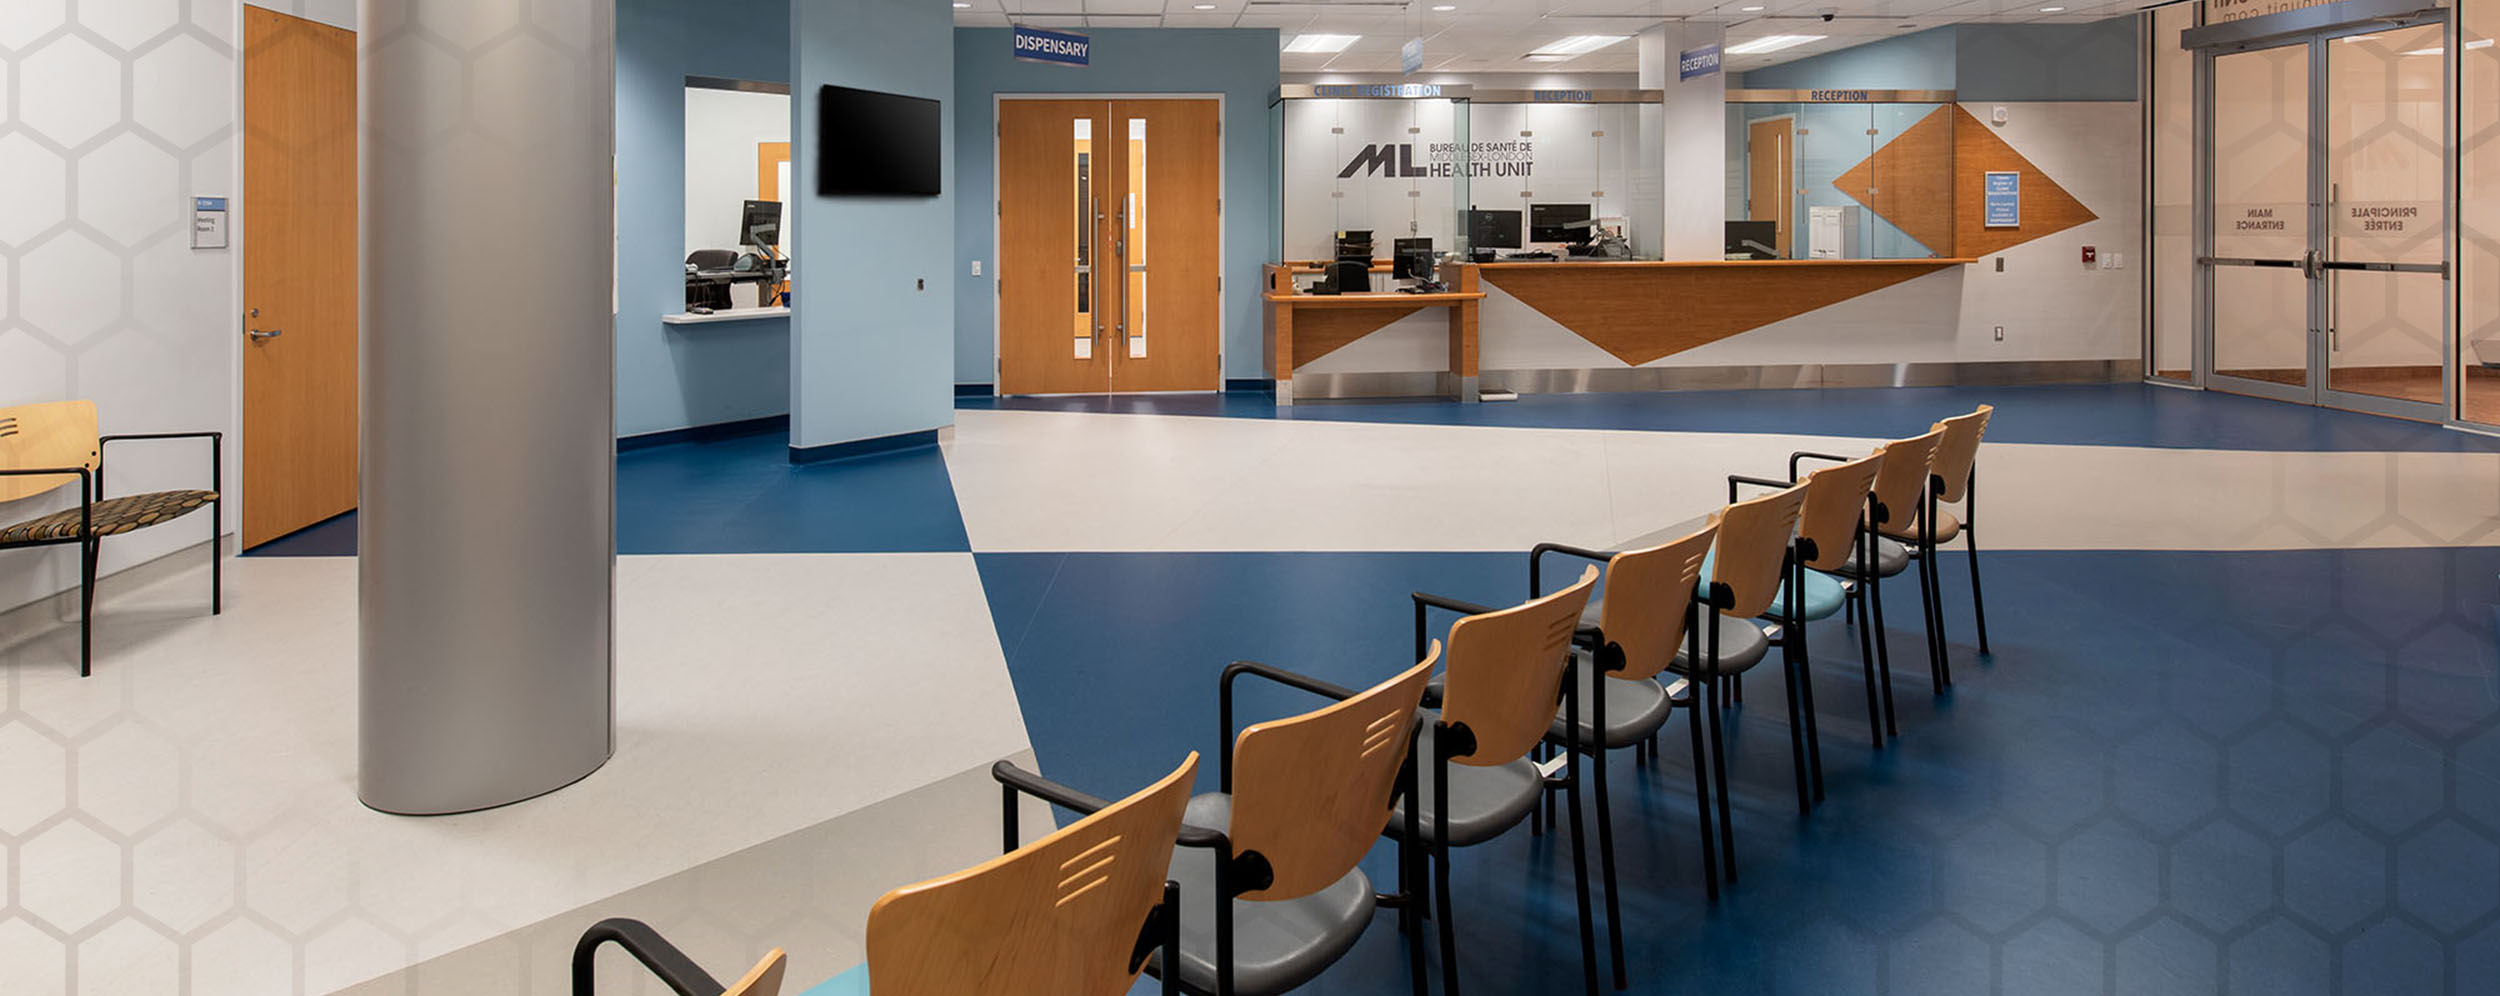 Middlesex London Health Unit, showing open floor plan for Reception area with chairs for patients to wait in.